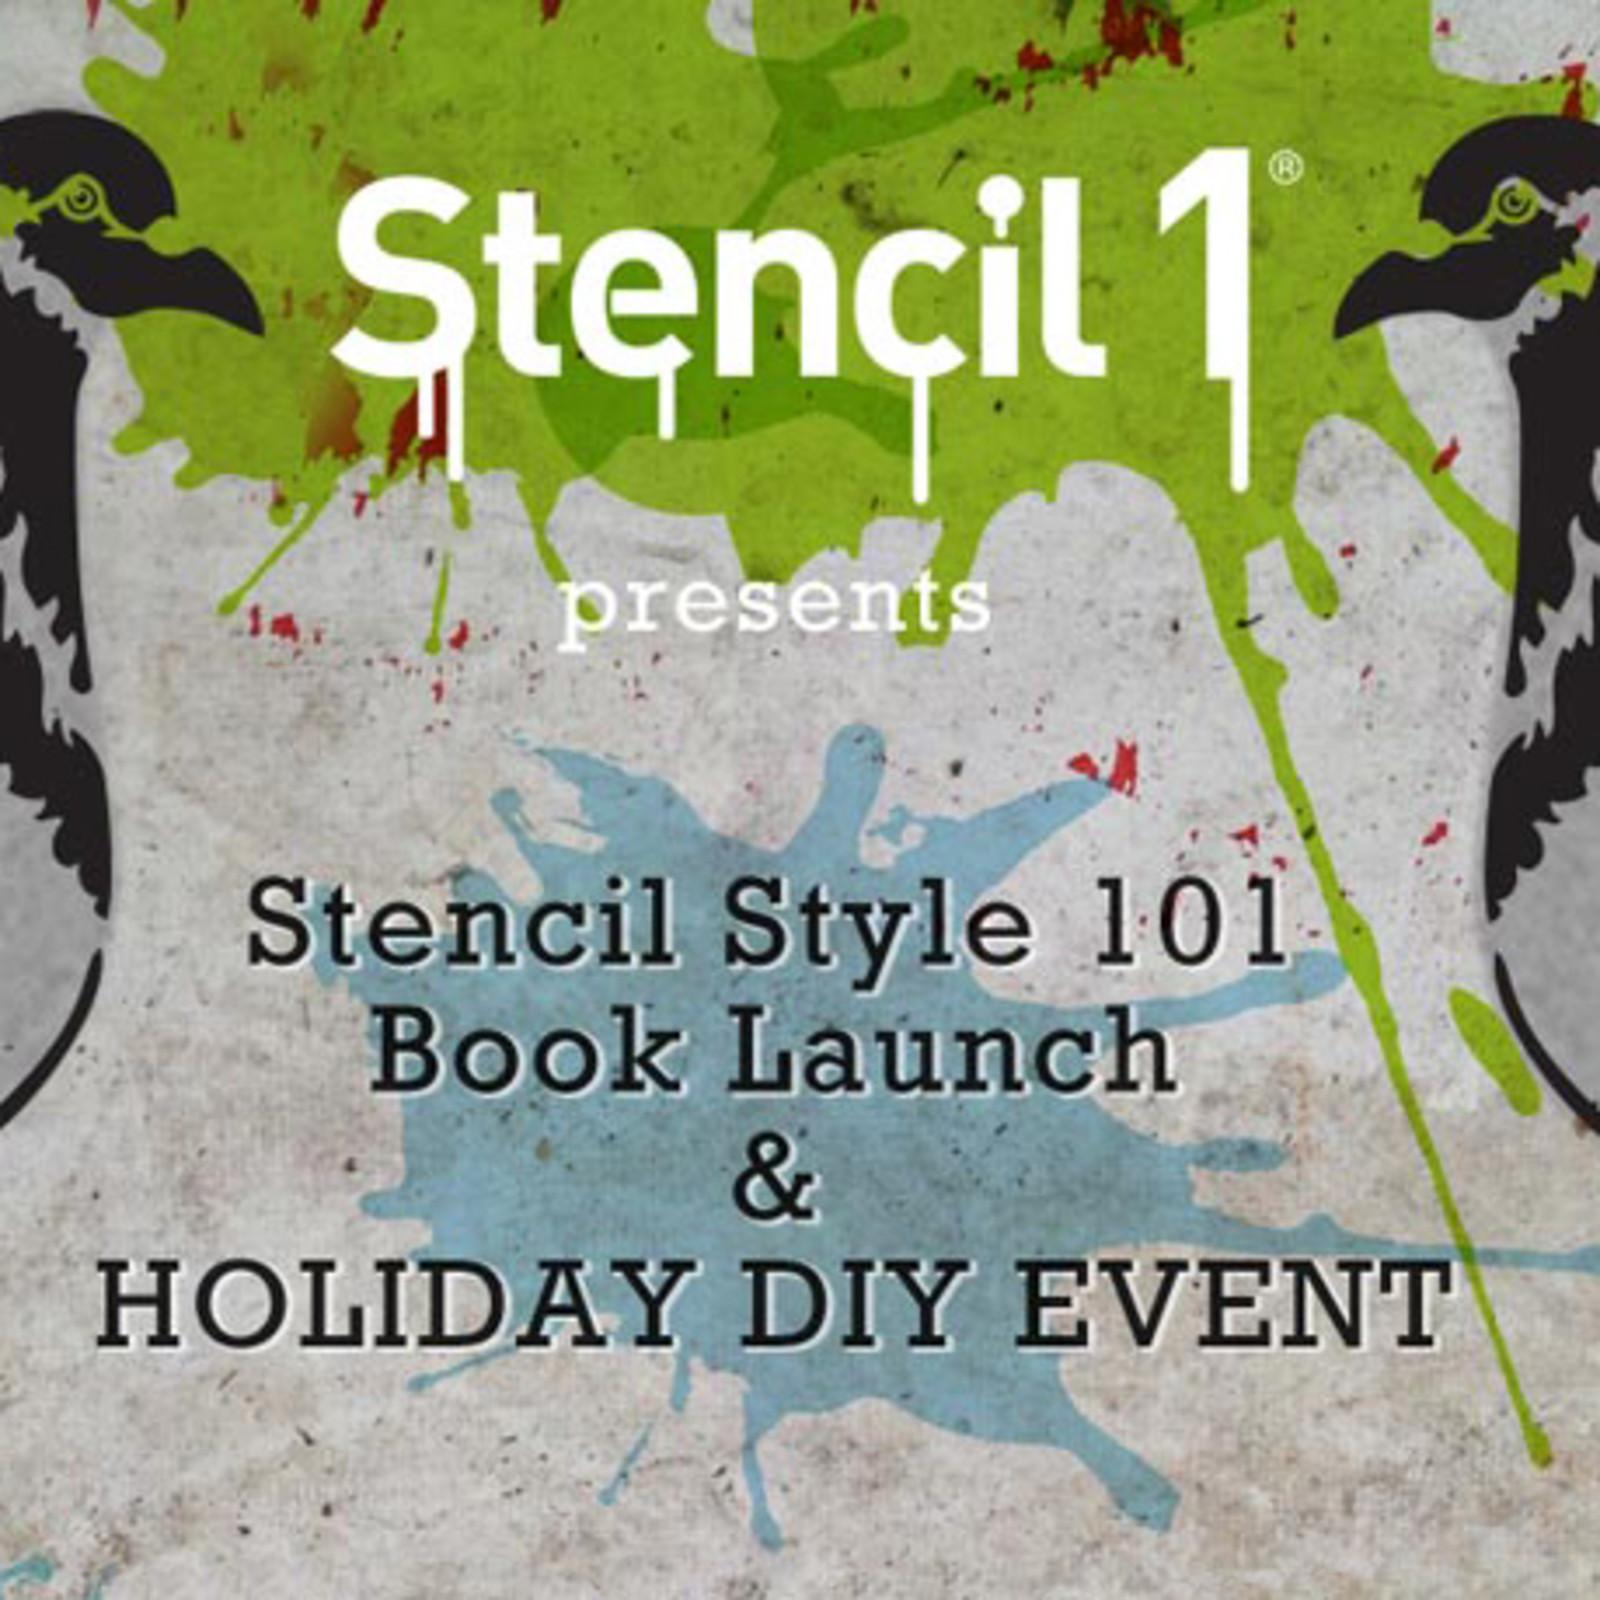 Stencil Style 101 Book Launch Holiday Diy Event Cool